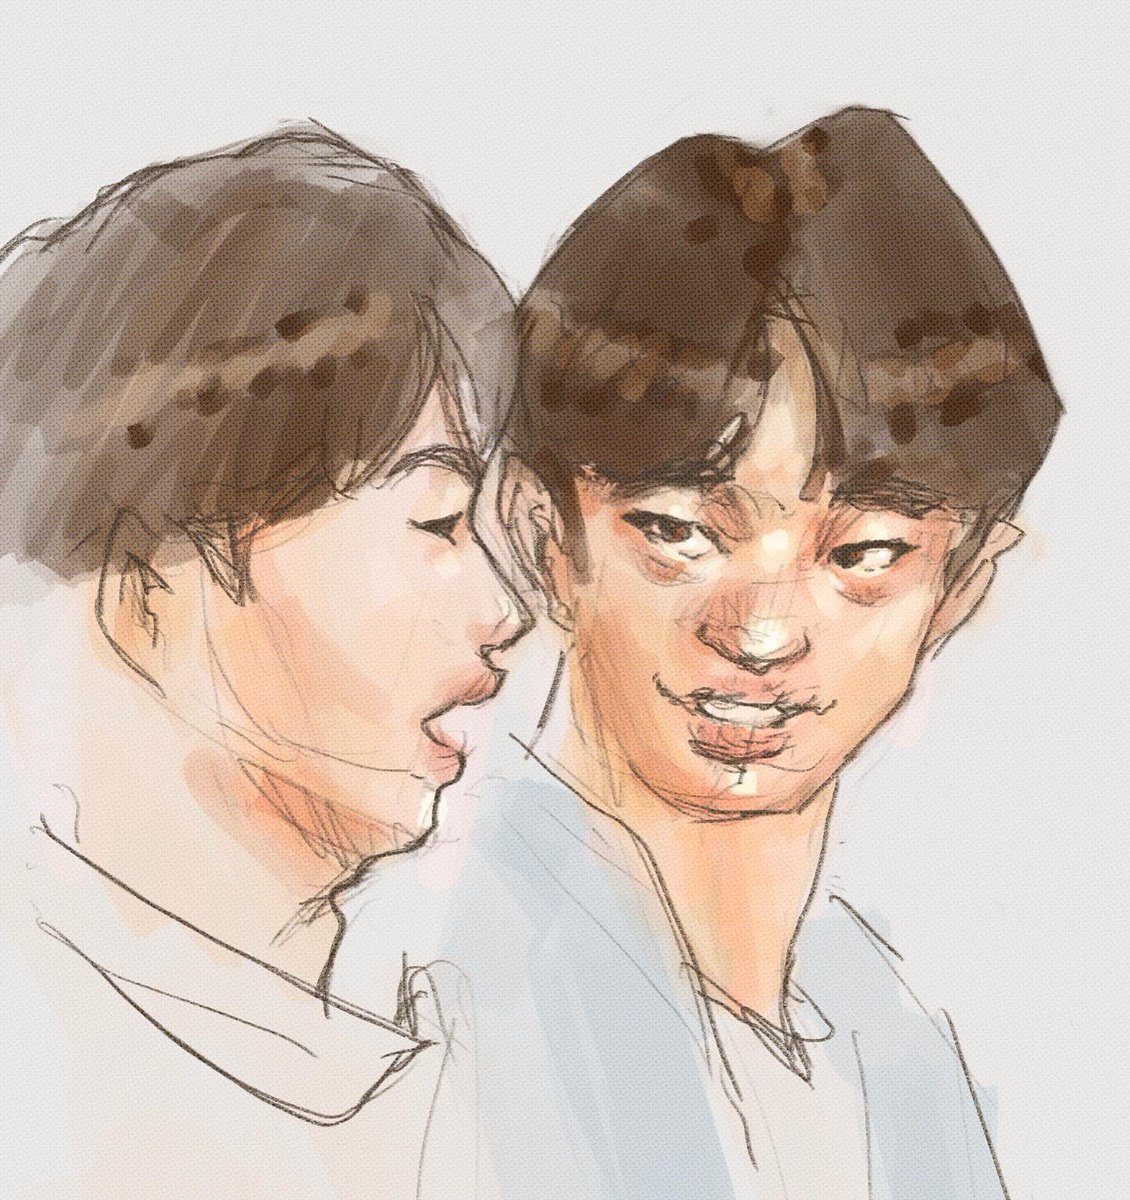 """didn't mean to disrespect felix and hyunjin like that 😢😢😓😓 A BIT OF AN EMBARAZZMENT, but it must be done to move forward and like, """"improve my art skills"""" or something. #skz #skzfanart #straykids #straykidsfanart #straykidsfelix #straykidshyunjin #kpopfanart"""